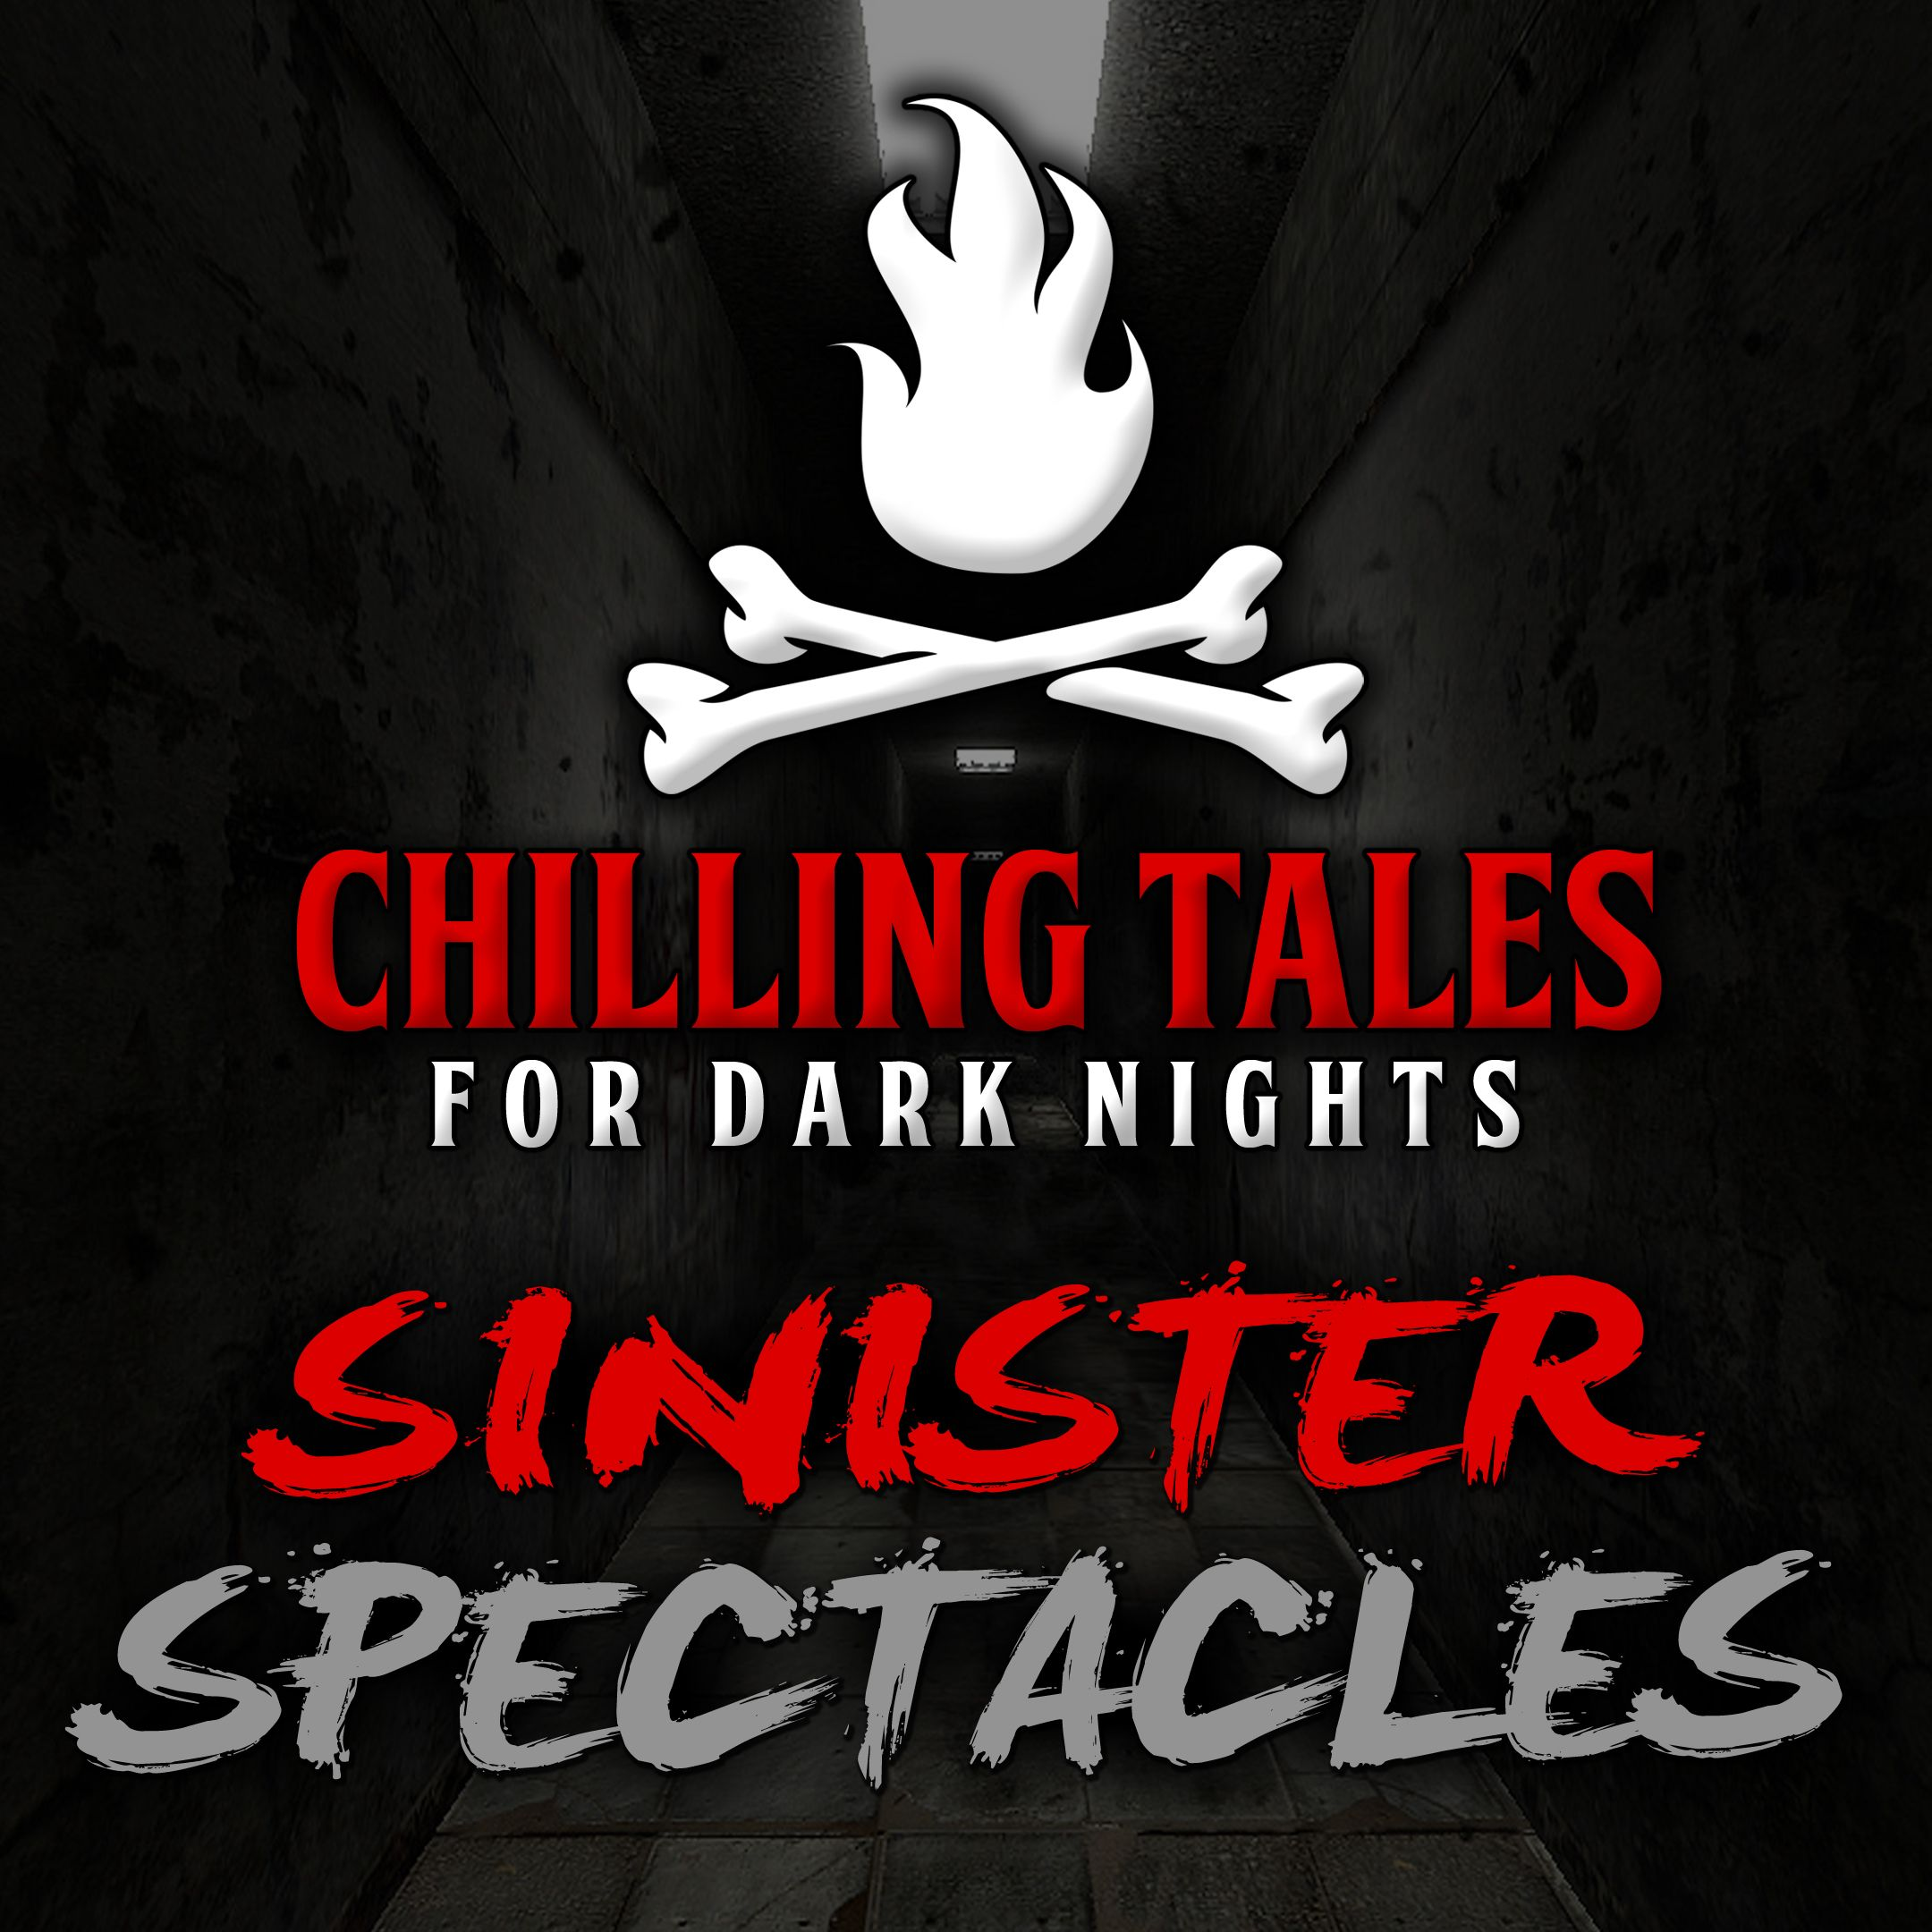 41: Sinister Spectacles – Chilling Tales for Dark Nights